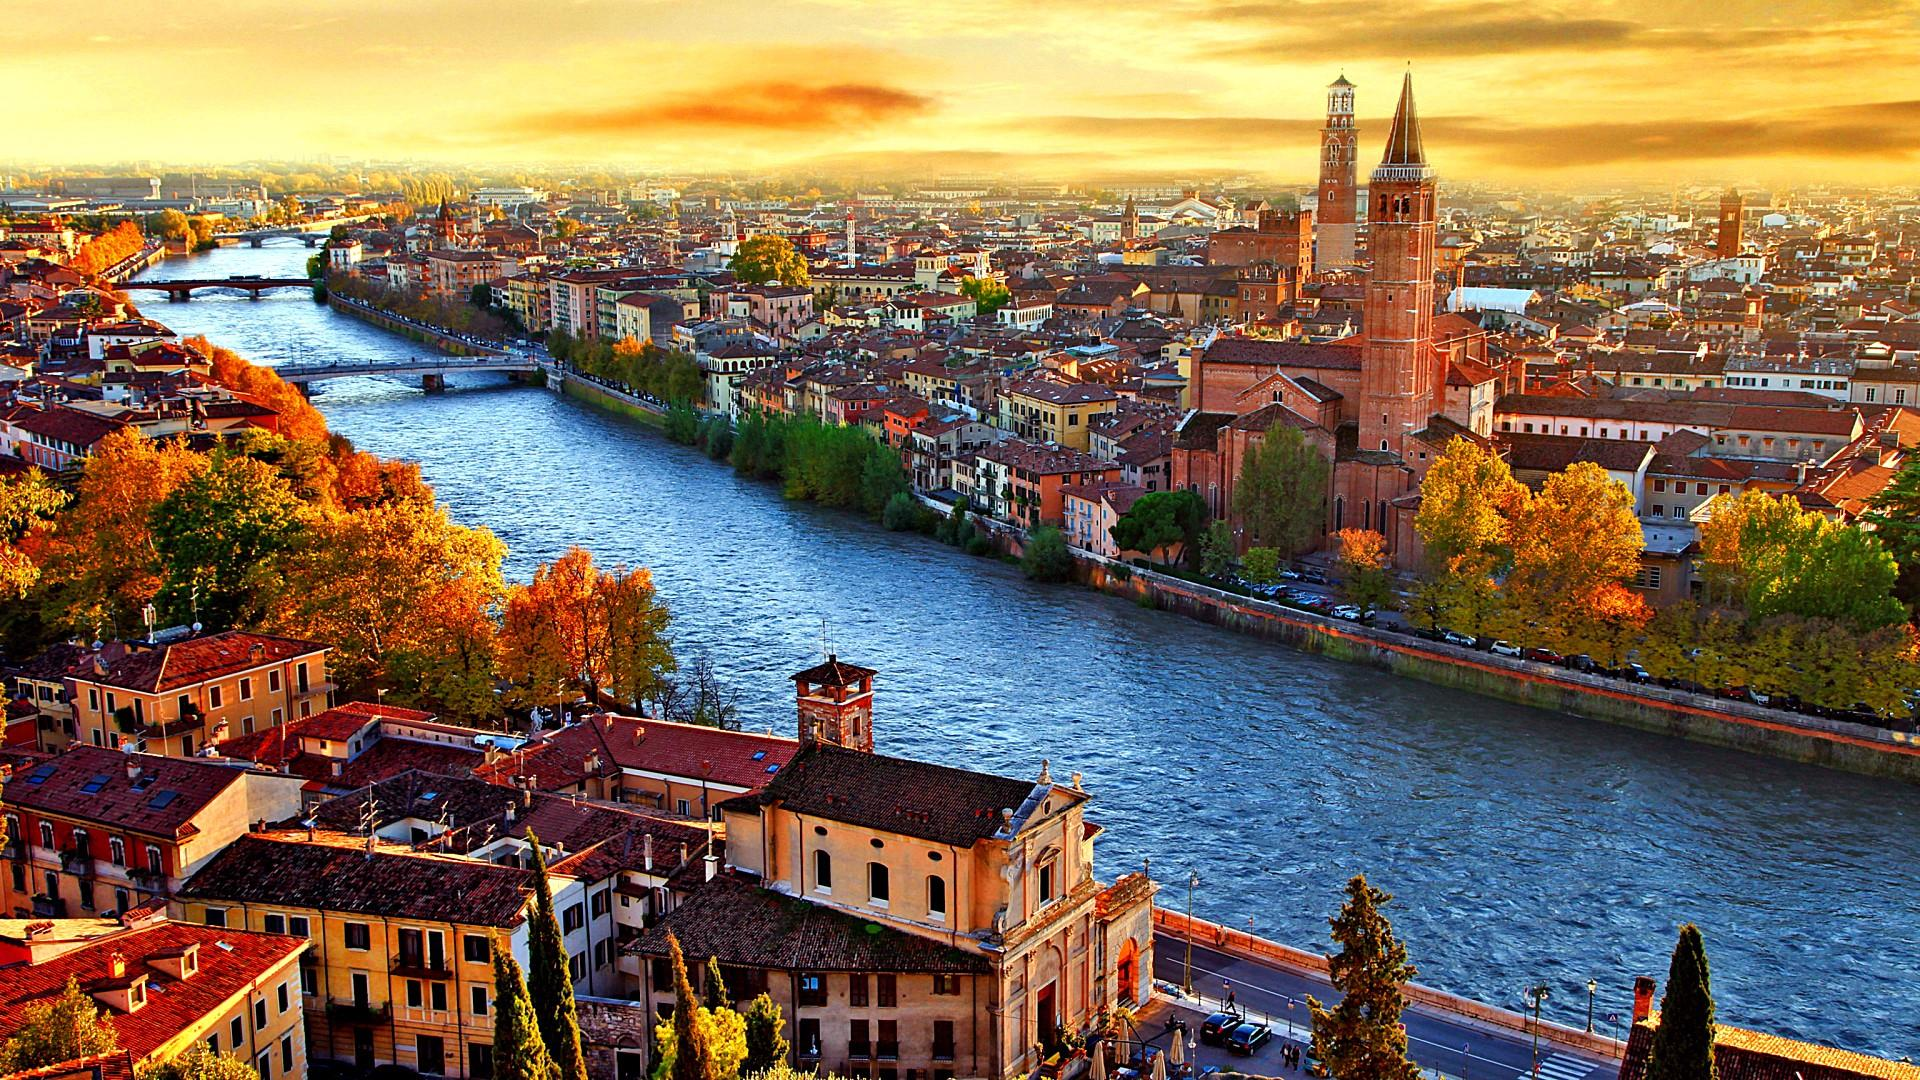 Wallpapers Of Italy Italy Desktop Wallpapers Top Free Italy Desktop Backgrounds